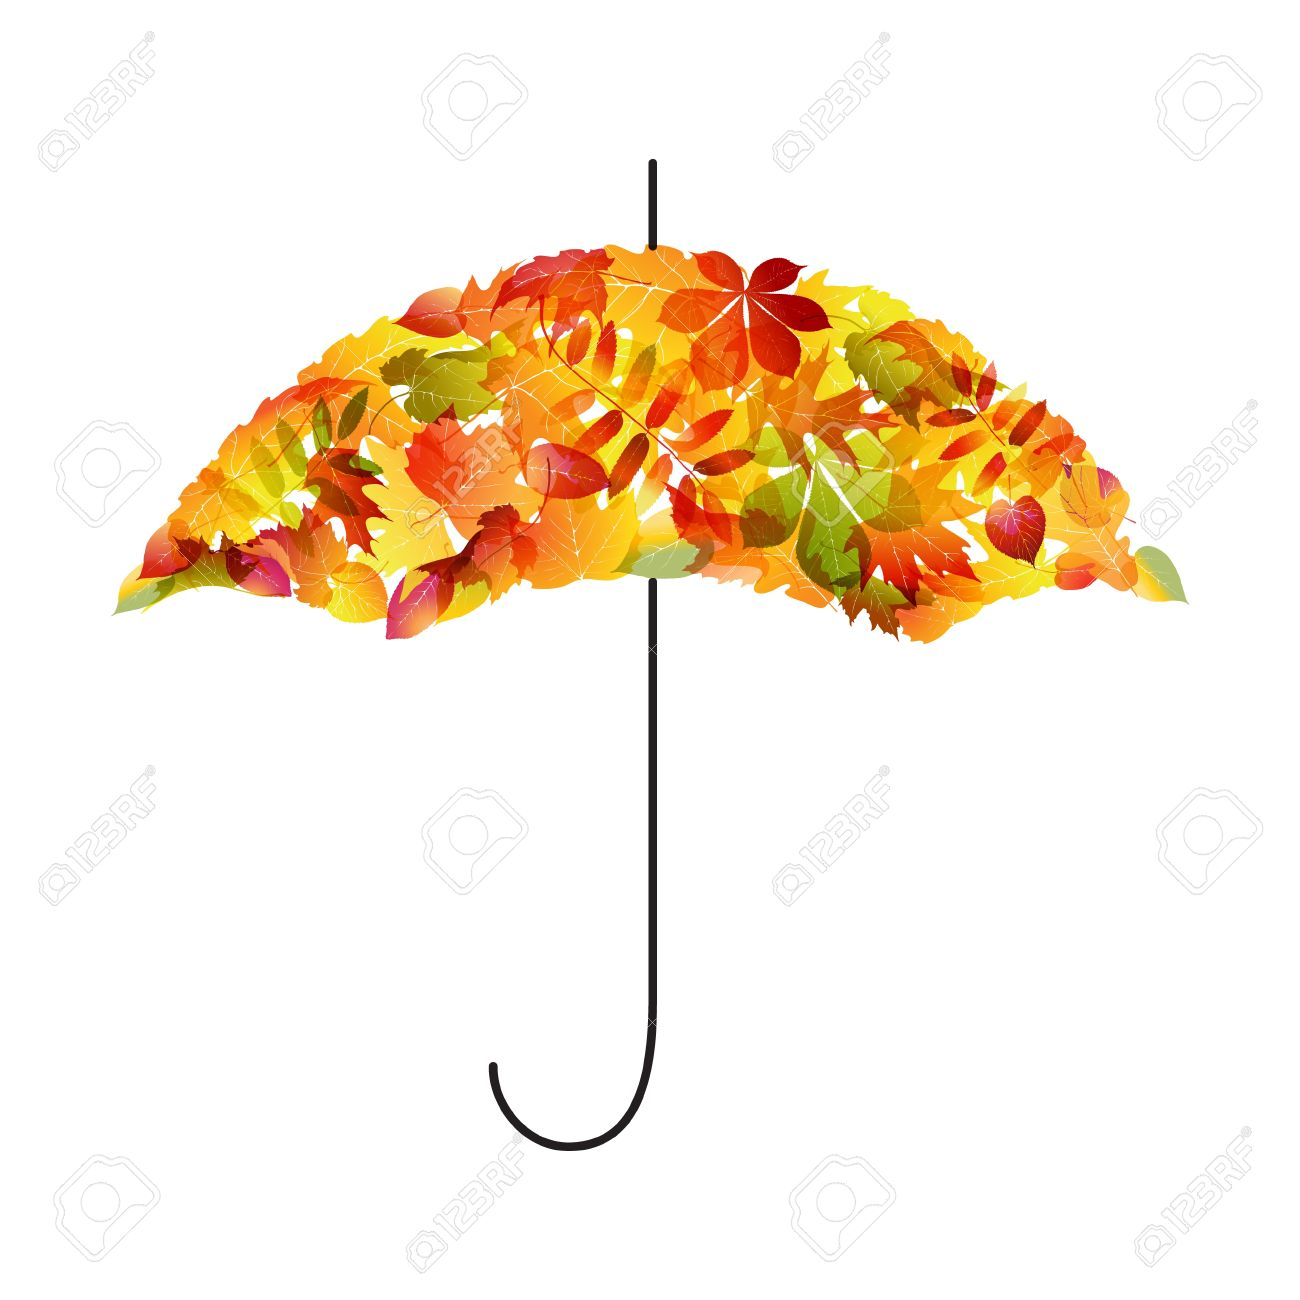 Autumn background  Umbrella of leaves Stock Vector - 15734670